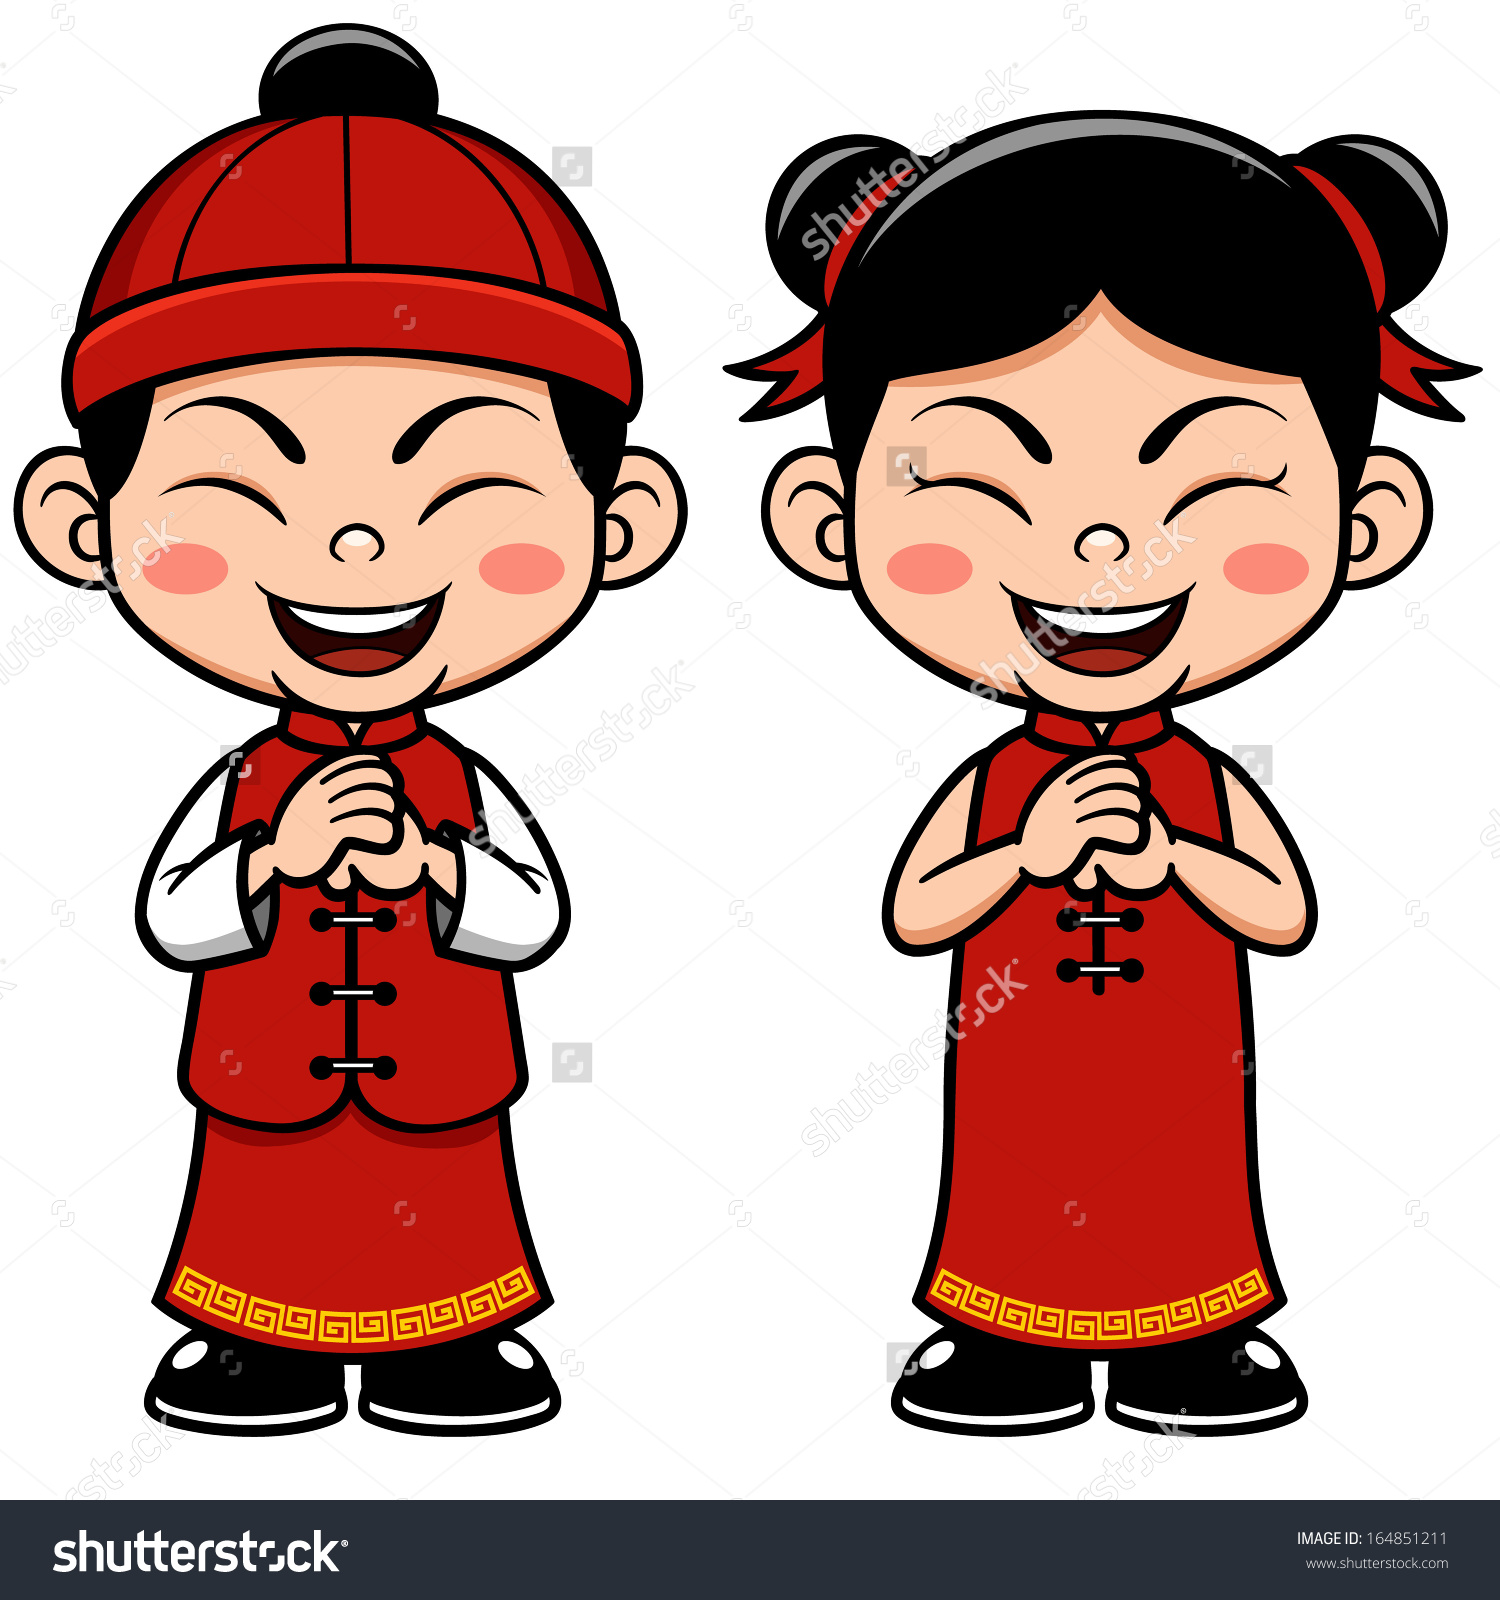 Chinese clipart. Top clip art free